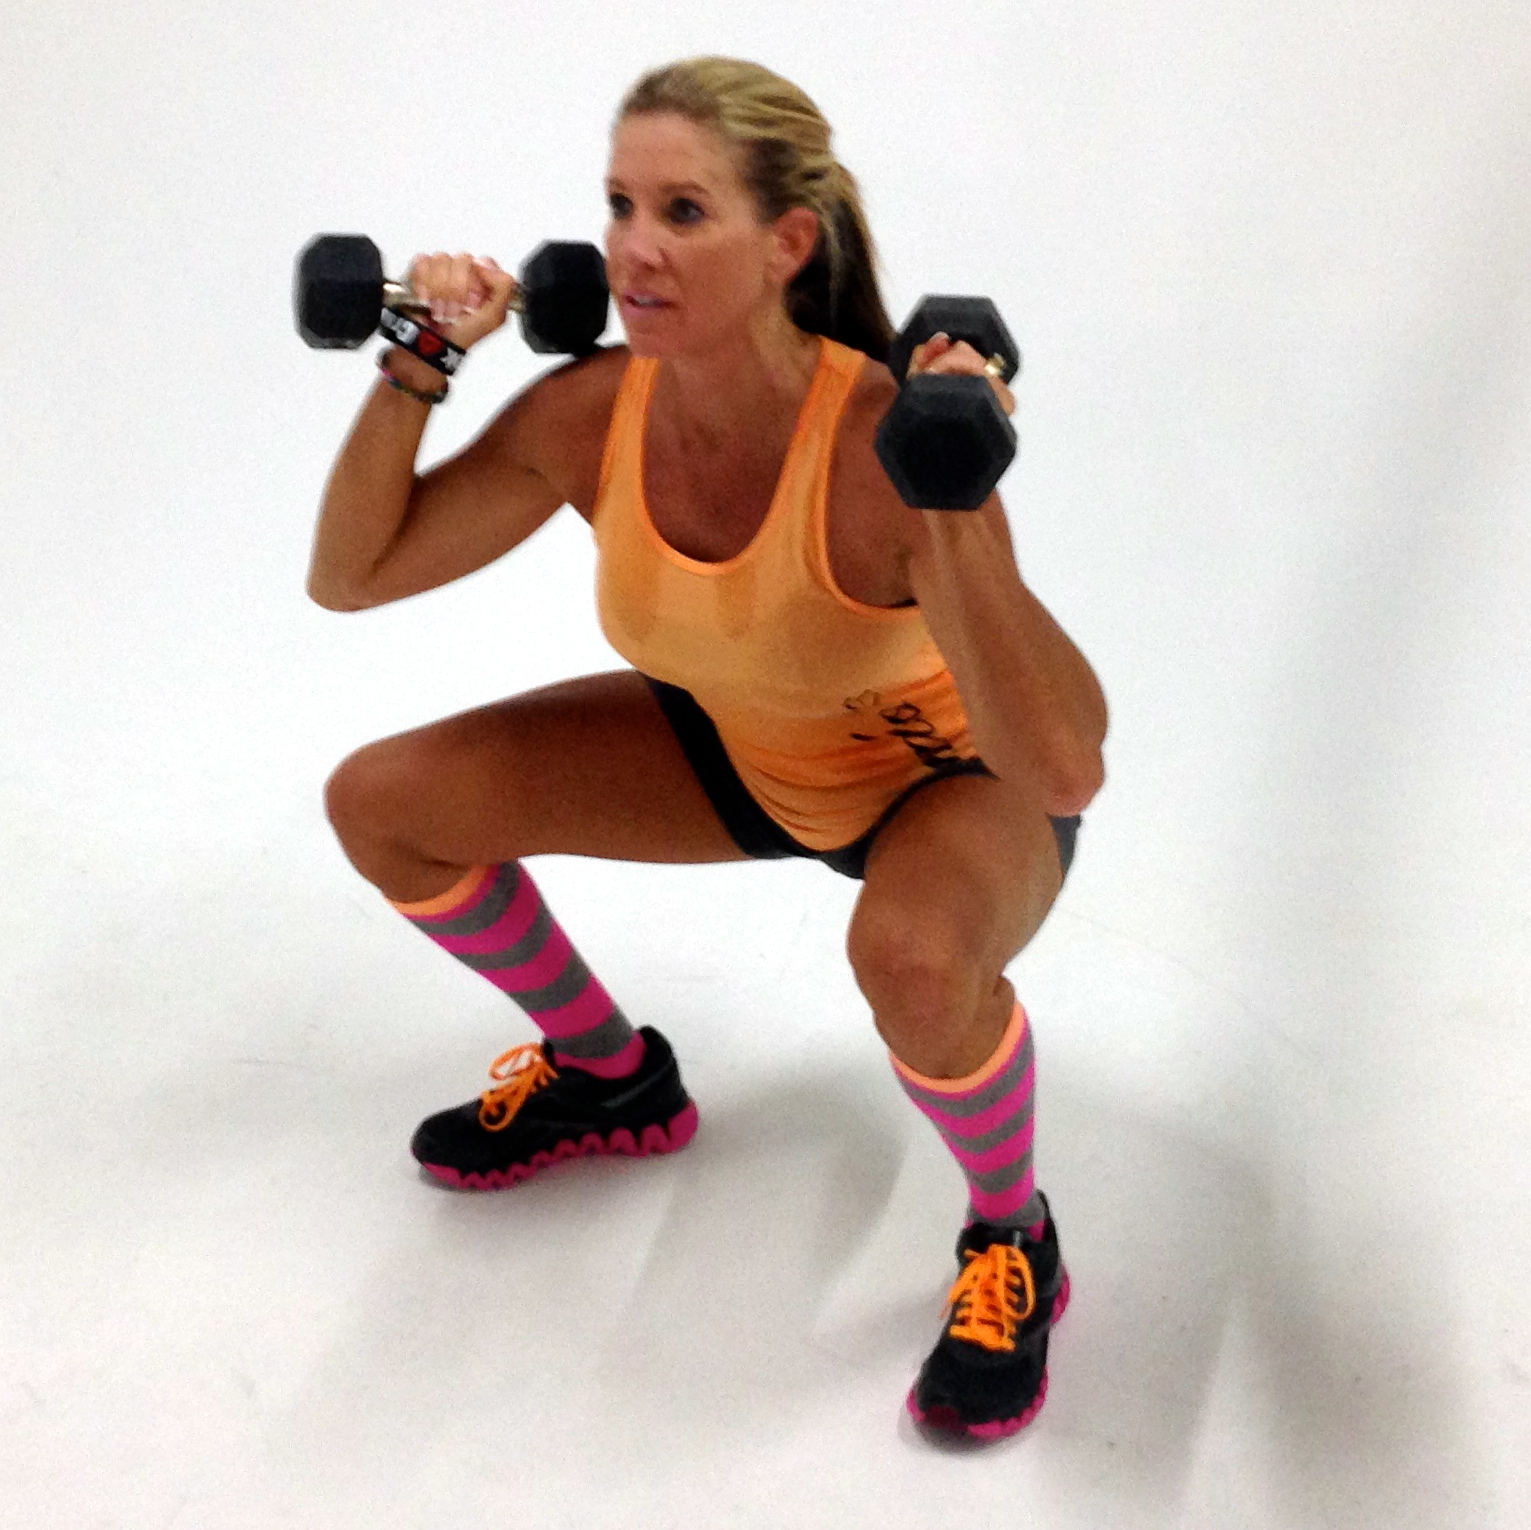 Pfitblog Pfit Pfood Pfaith Leg Butt Toning Circuit Anytime You Use Multi Joint Movements Like Squatting With An Overhead Shoulder Press Burn More Calories And Improve Strength Power